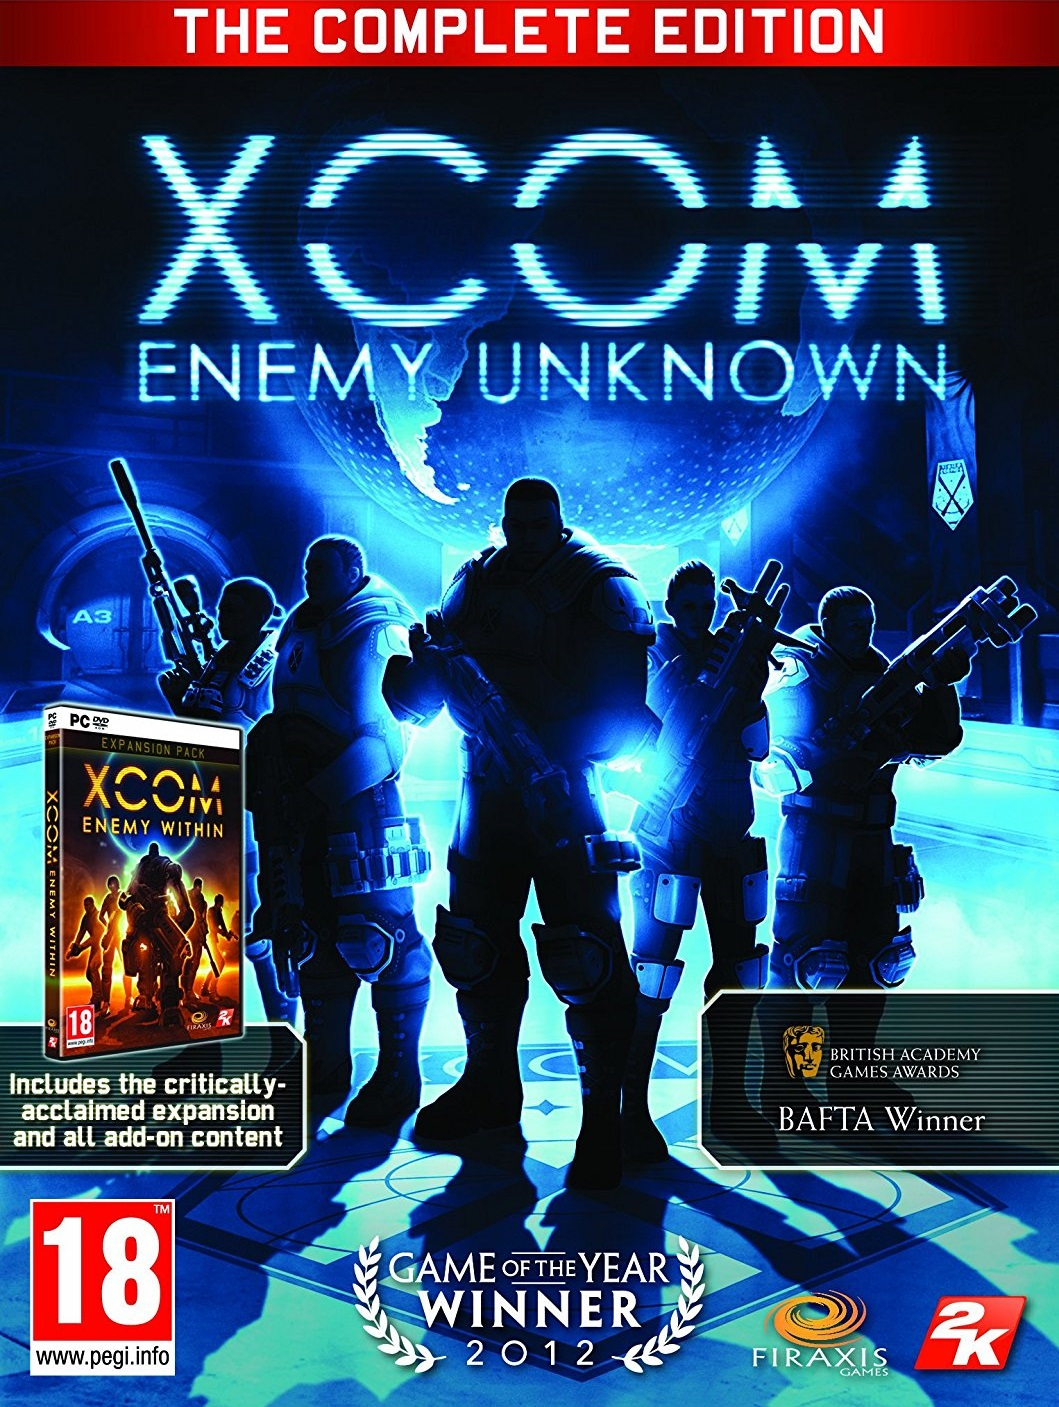 Xcom Enemy Unknown The Complete Edition Elamigos Pc Espanol Google